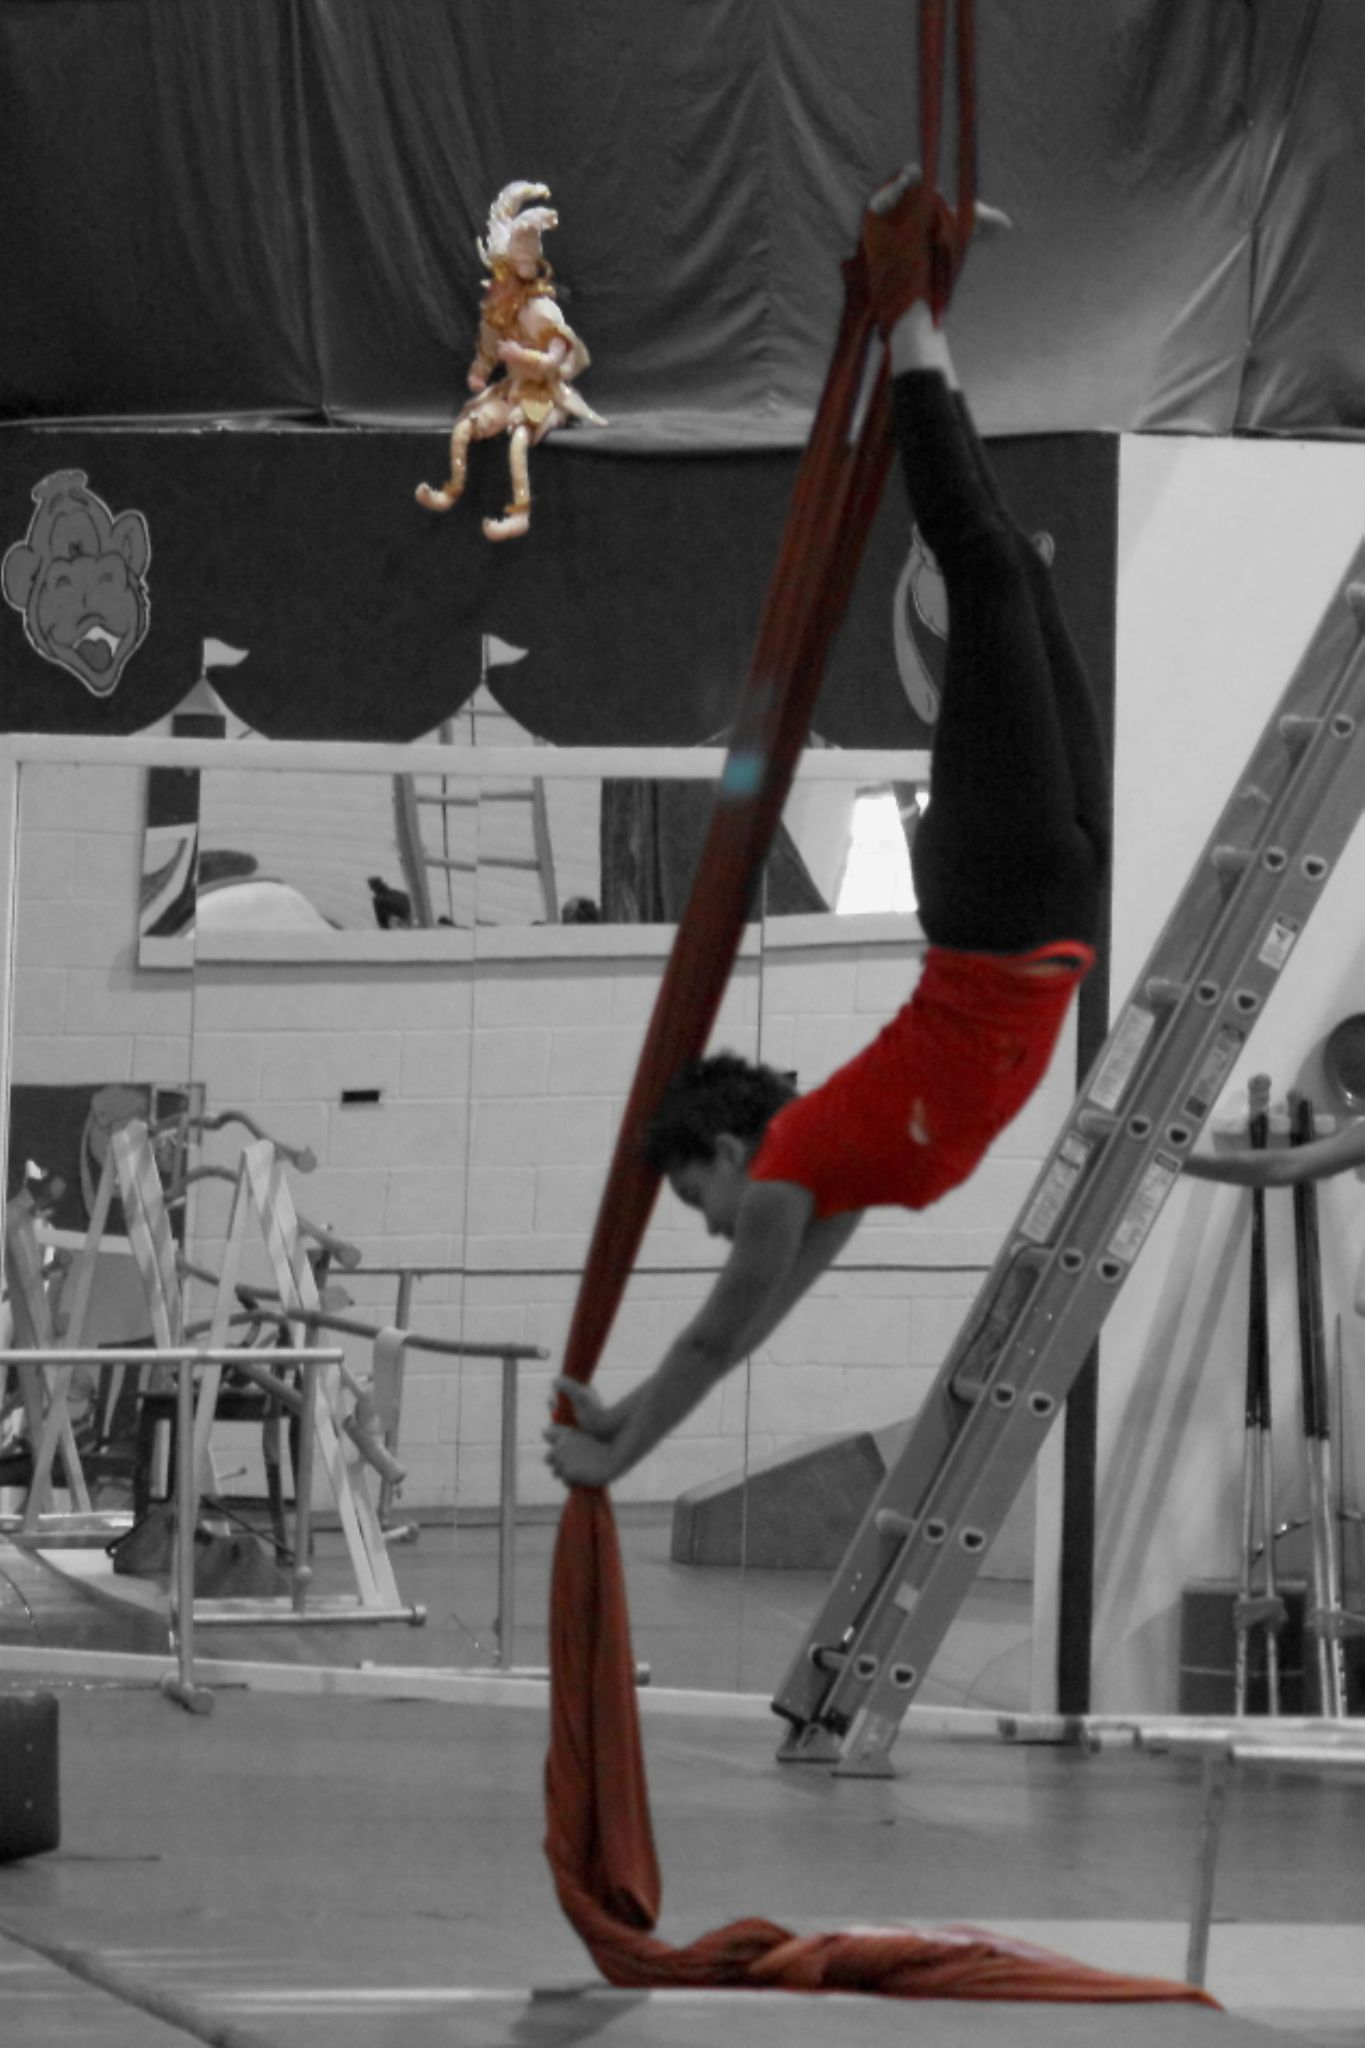 My Daughter on Silks by JaniceArnottPhotography